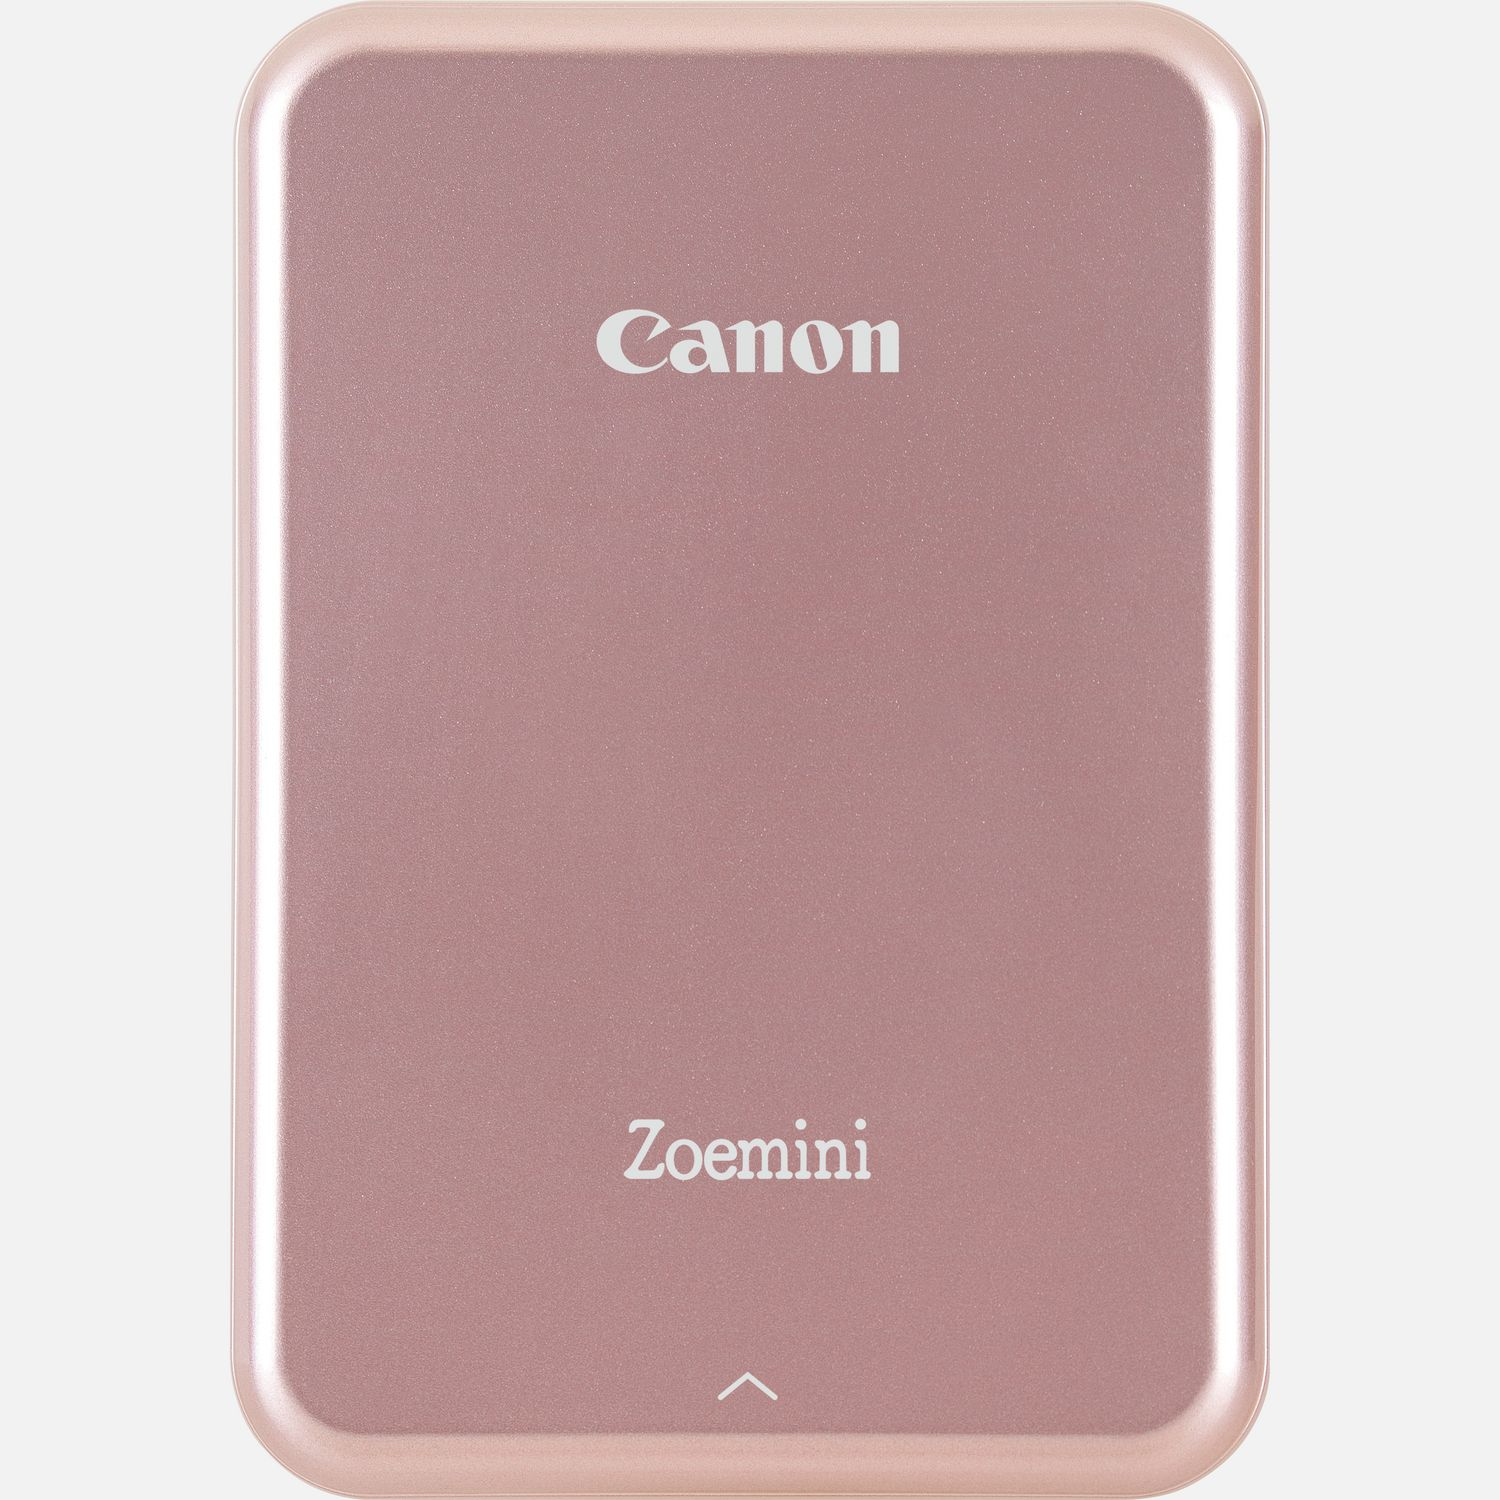 Portable Photo Printer Uk Portable Heater Air Conditioner Combo Indoor Tv Aerial Currys Seagate Backup Plus 4tb Portable External Hard Drive For Ps4: Buy Canon Zoemini Portable Photo Printer, Rose Gold In